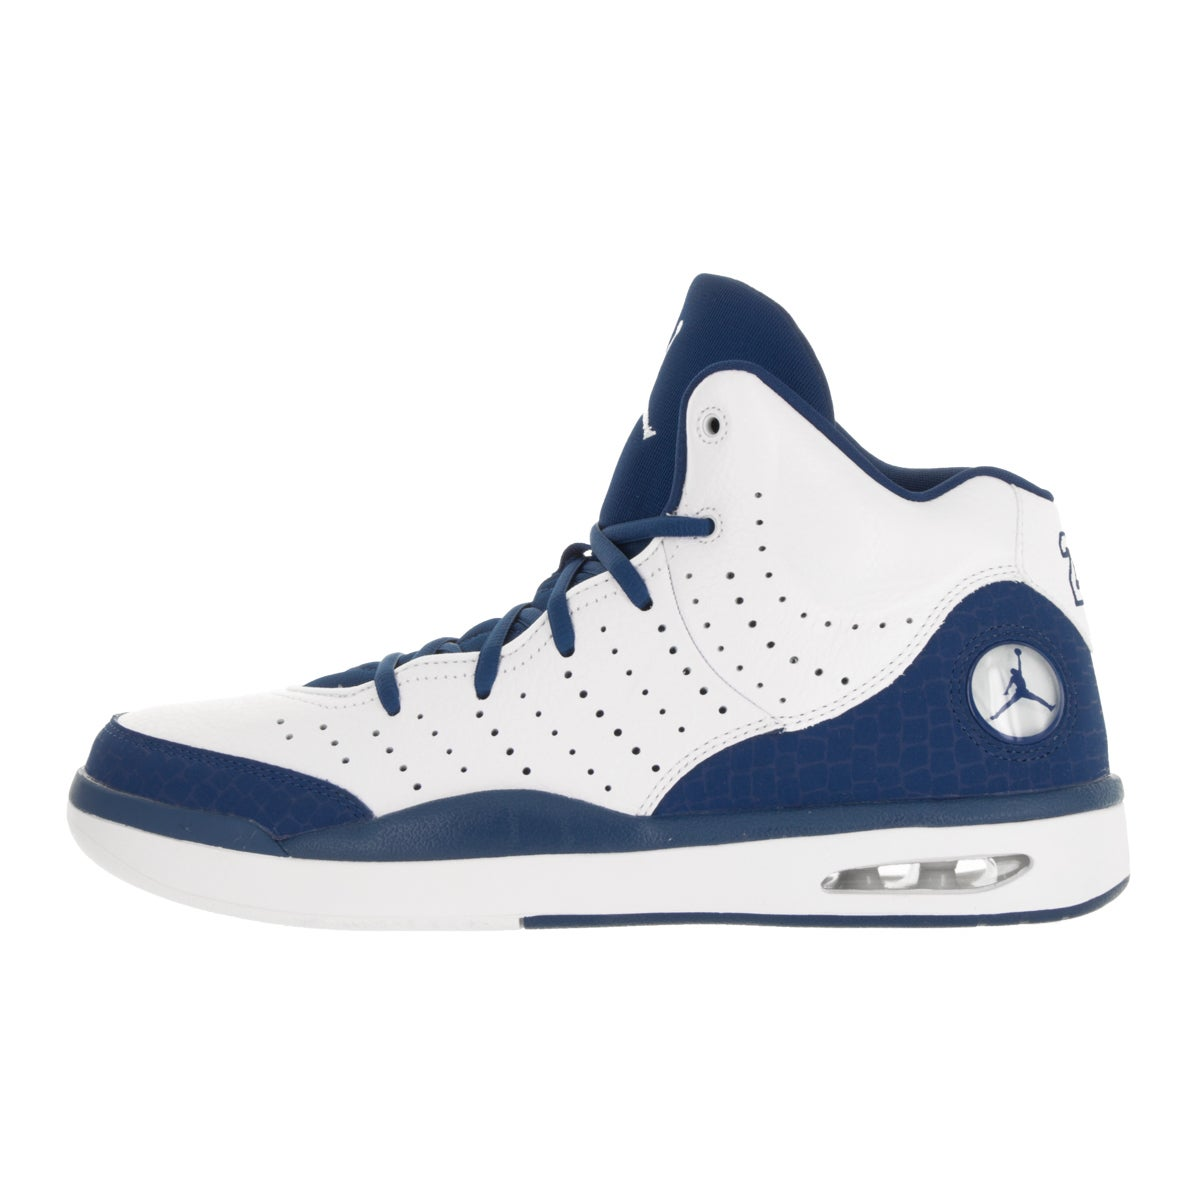 competitive price 415c3 ab23e Shop Nike Jordan Men's Jordan Flight Tradition White/French Blue Basketball  Shoe - Free Shipping Today - Overstock - 13395409